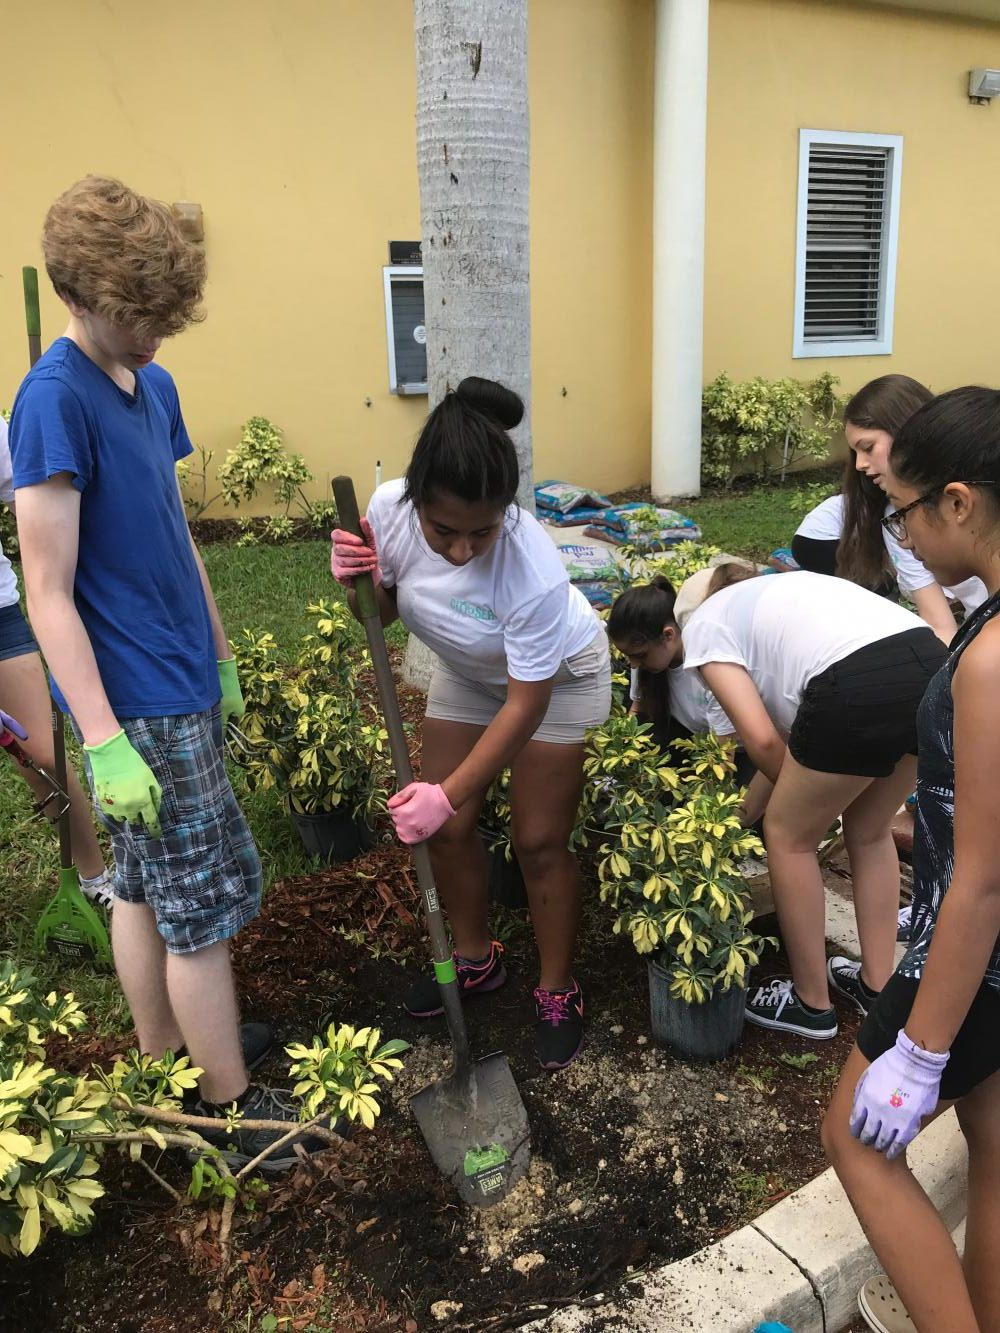 Students+and+City+Serve+volunteers+work+together+to+landscape.